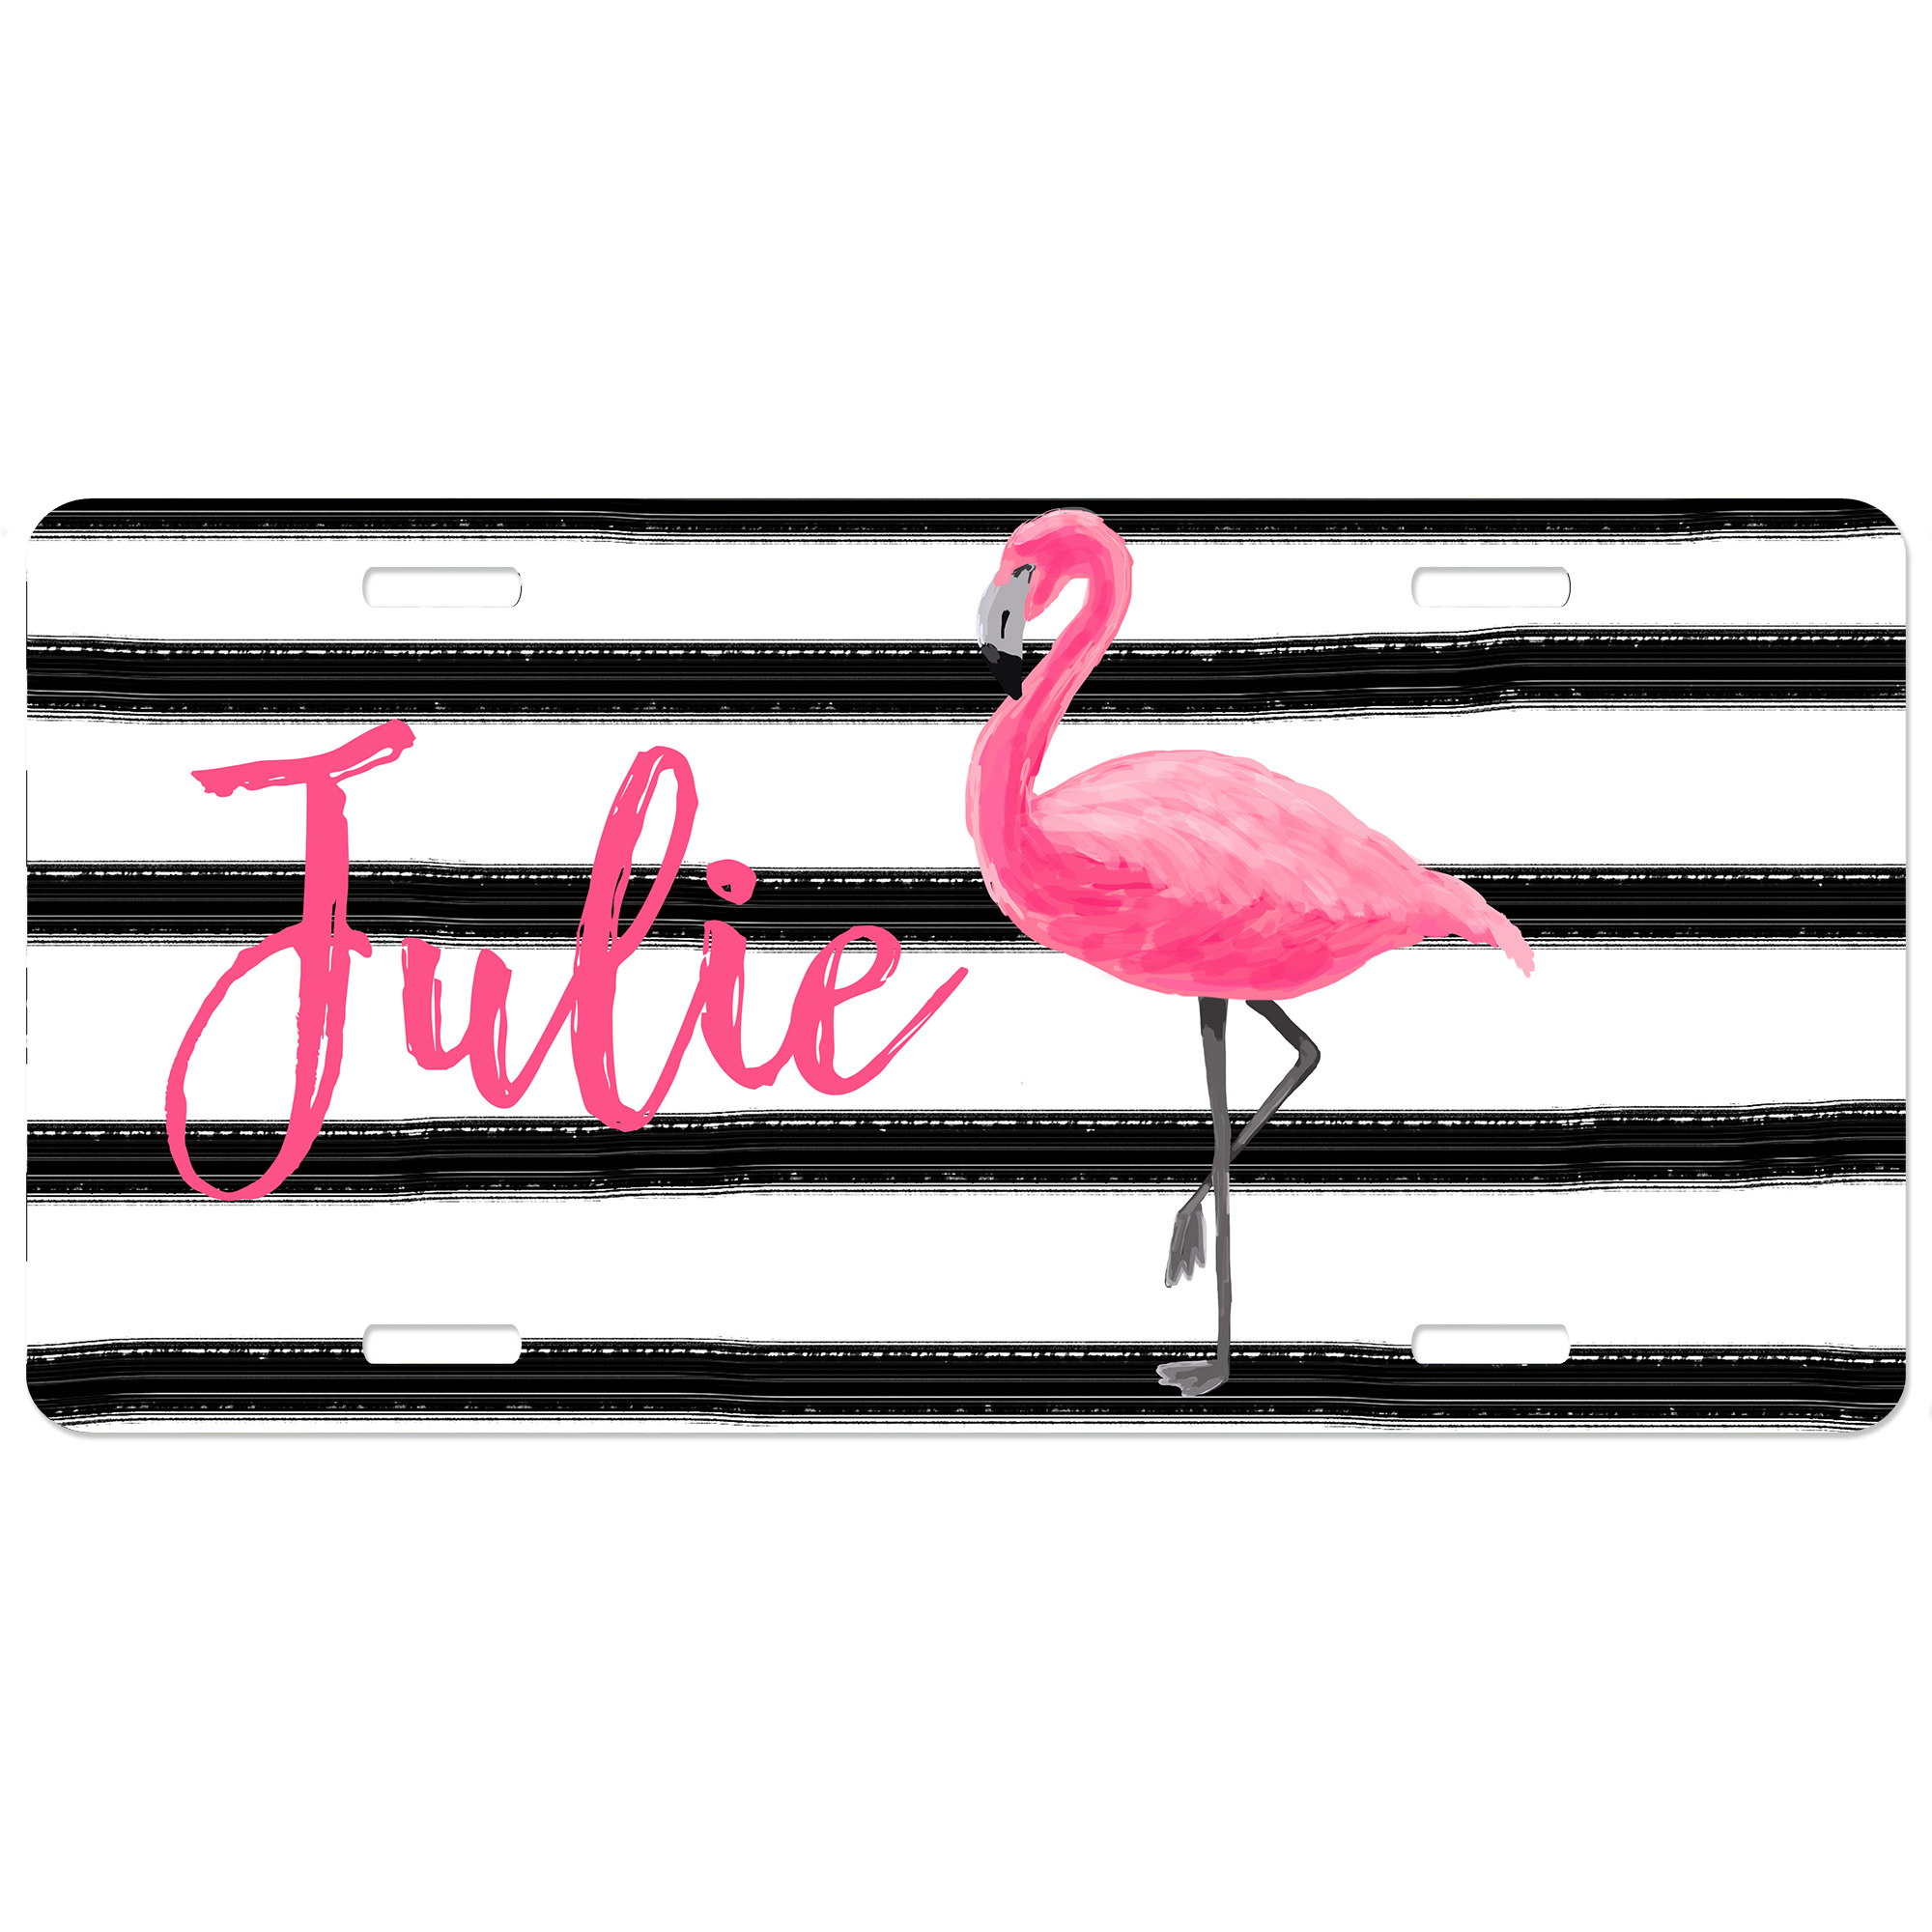 Flamingo Stripes Personalized Car Tag - Decorative License Plate Monogrammed License Plate | Personalized Decorative LIcense Plates | Vanity Plates  sc 1 st  Lime Rikee Designs & Flamingo Stripes Personalized Car Tag - Decorative License Plate ...